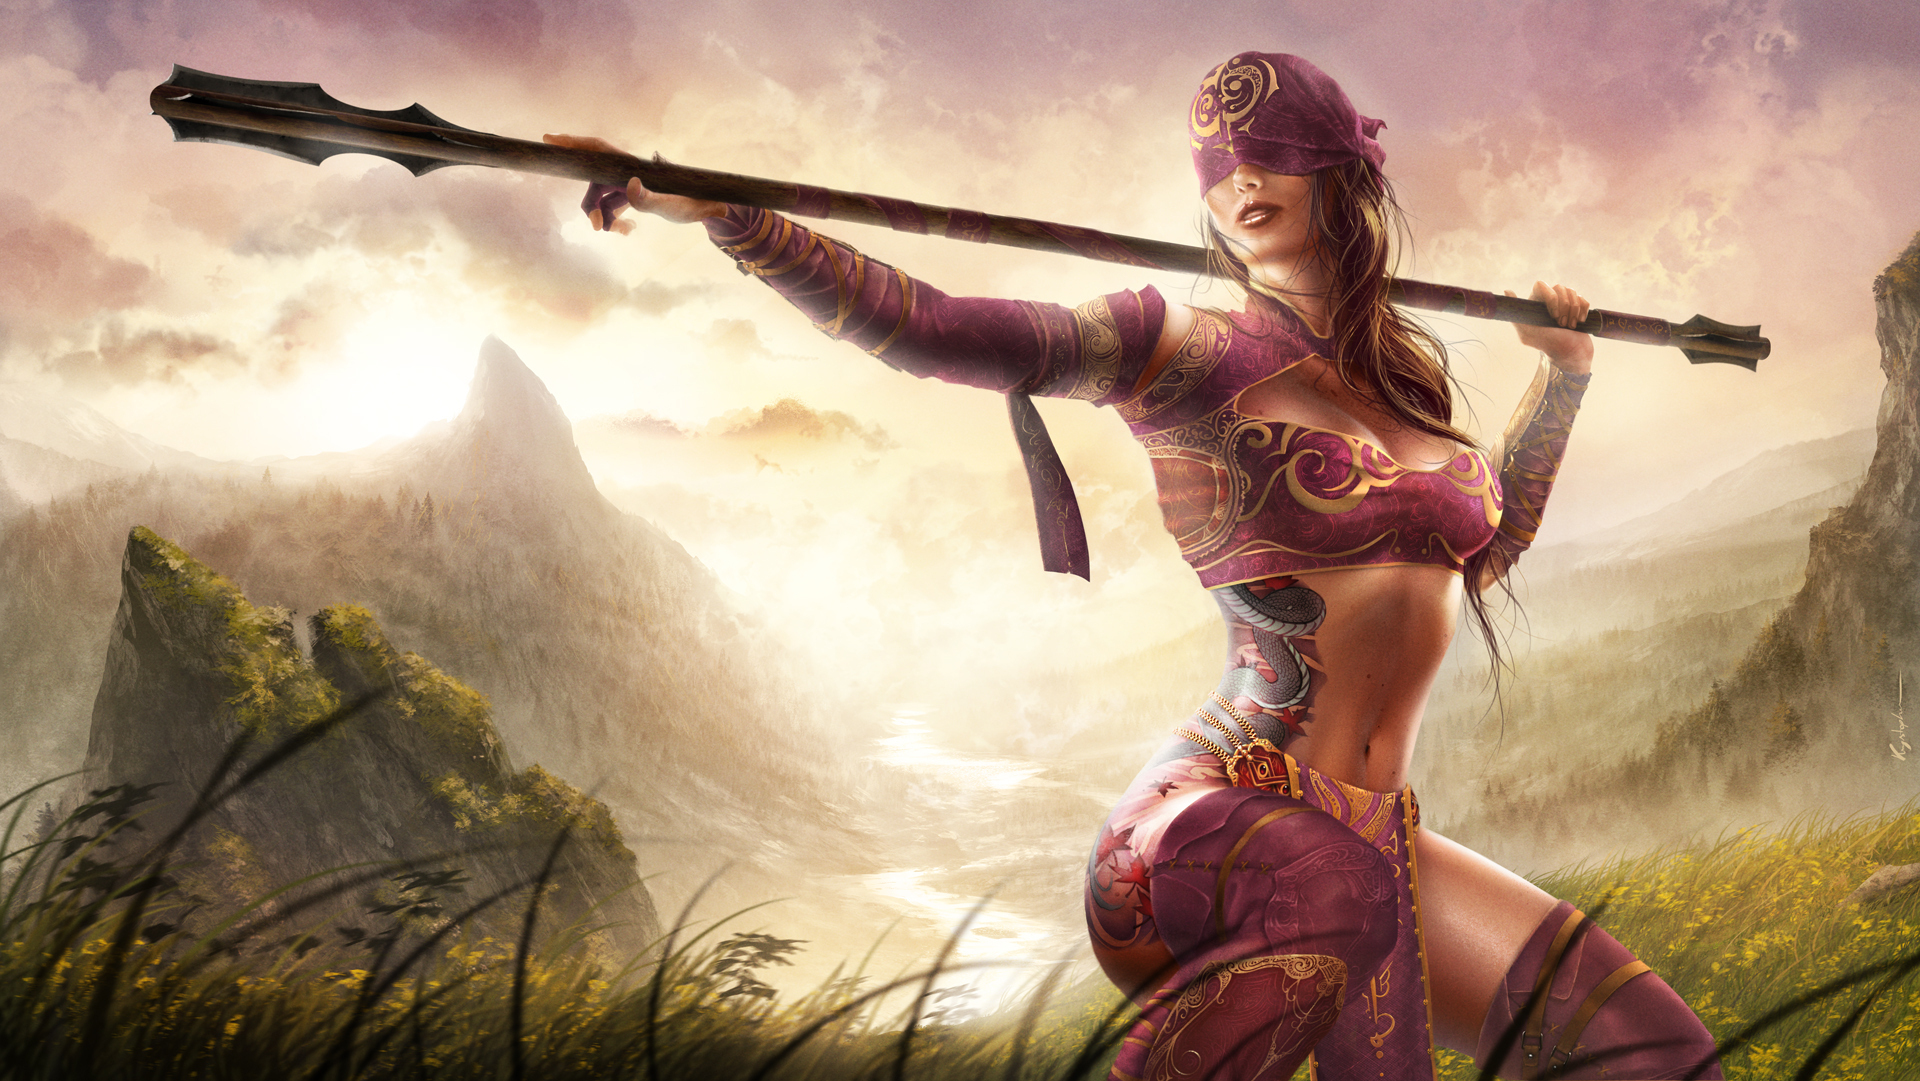 Women Warrior Full Hd Wallpaper And Background Image -3852